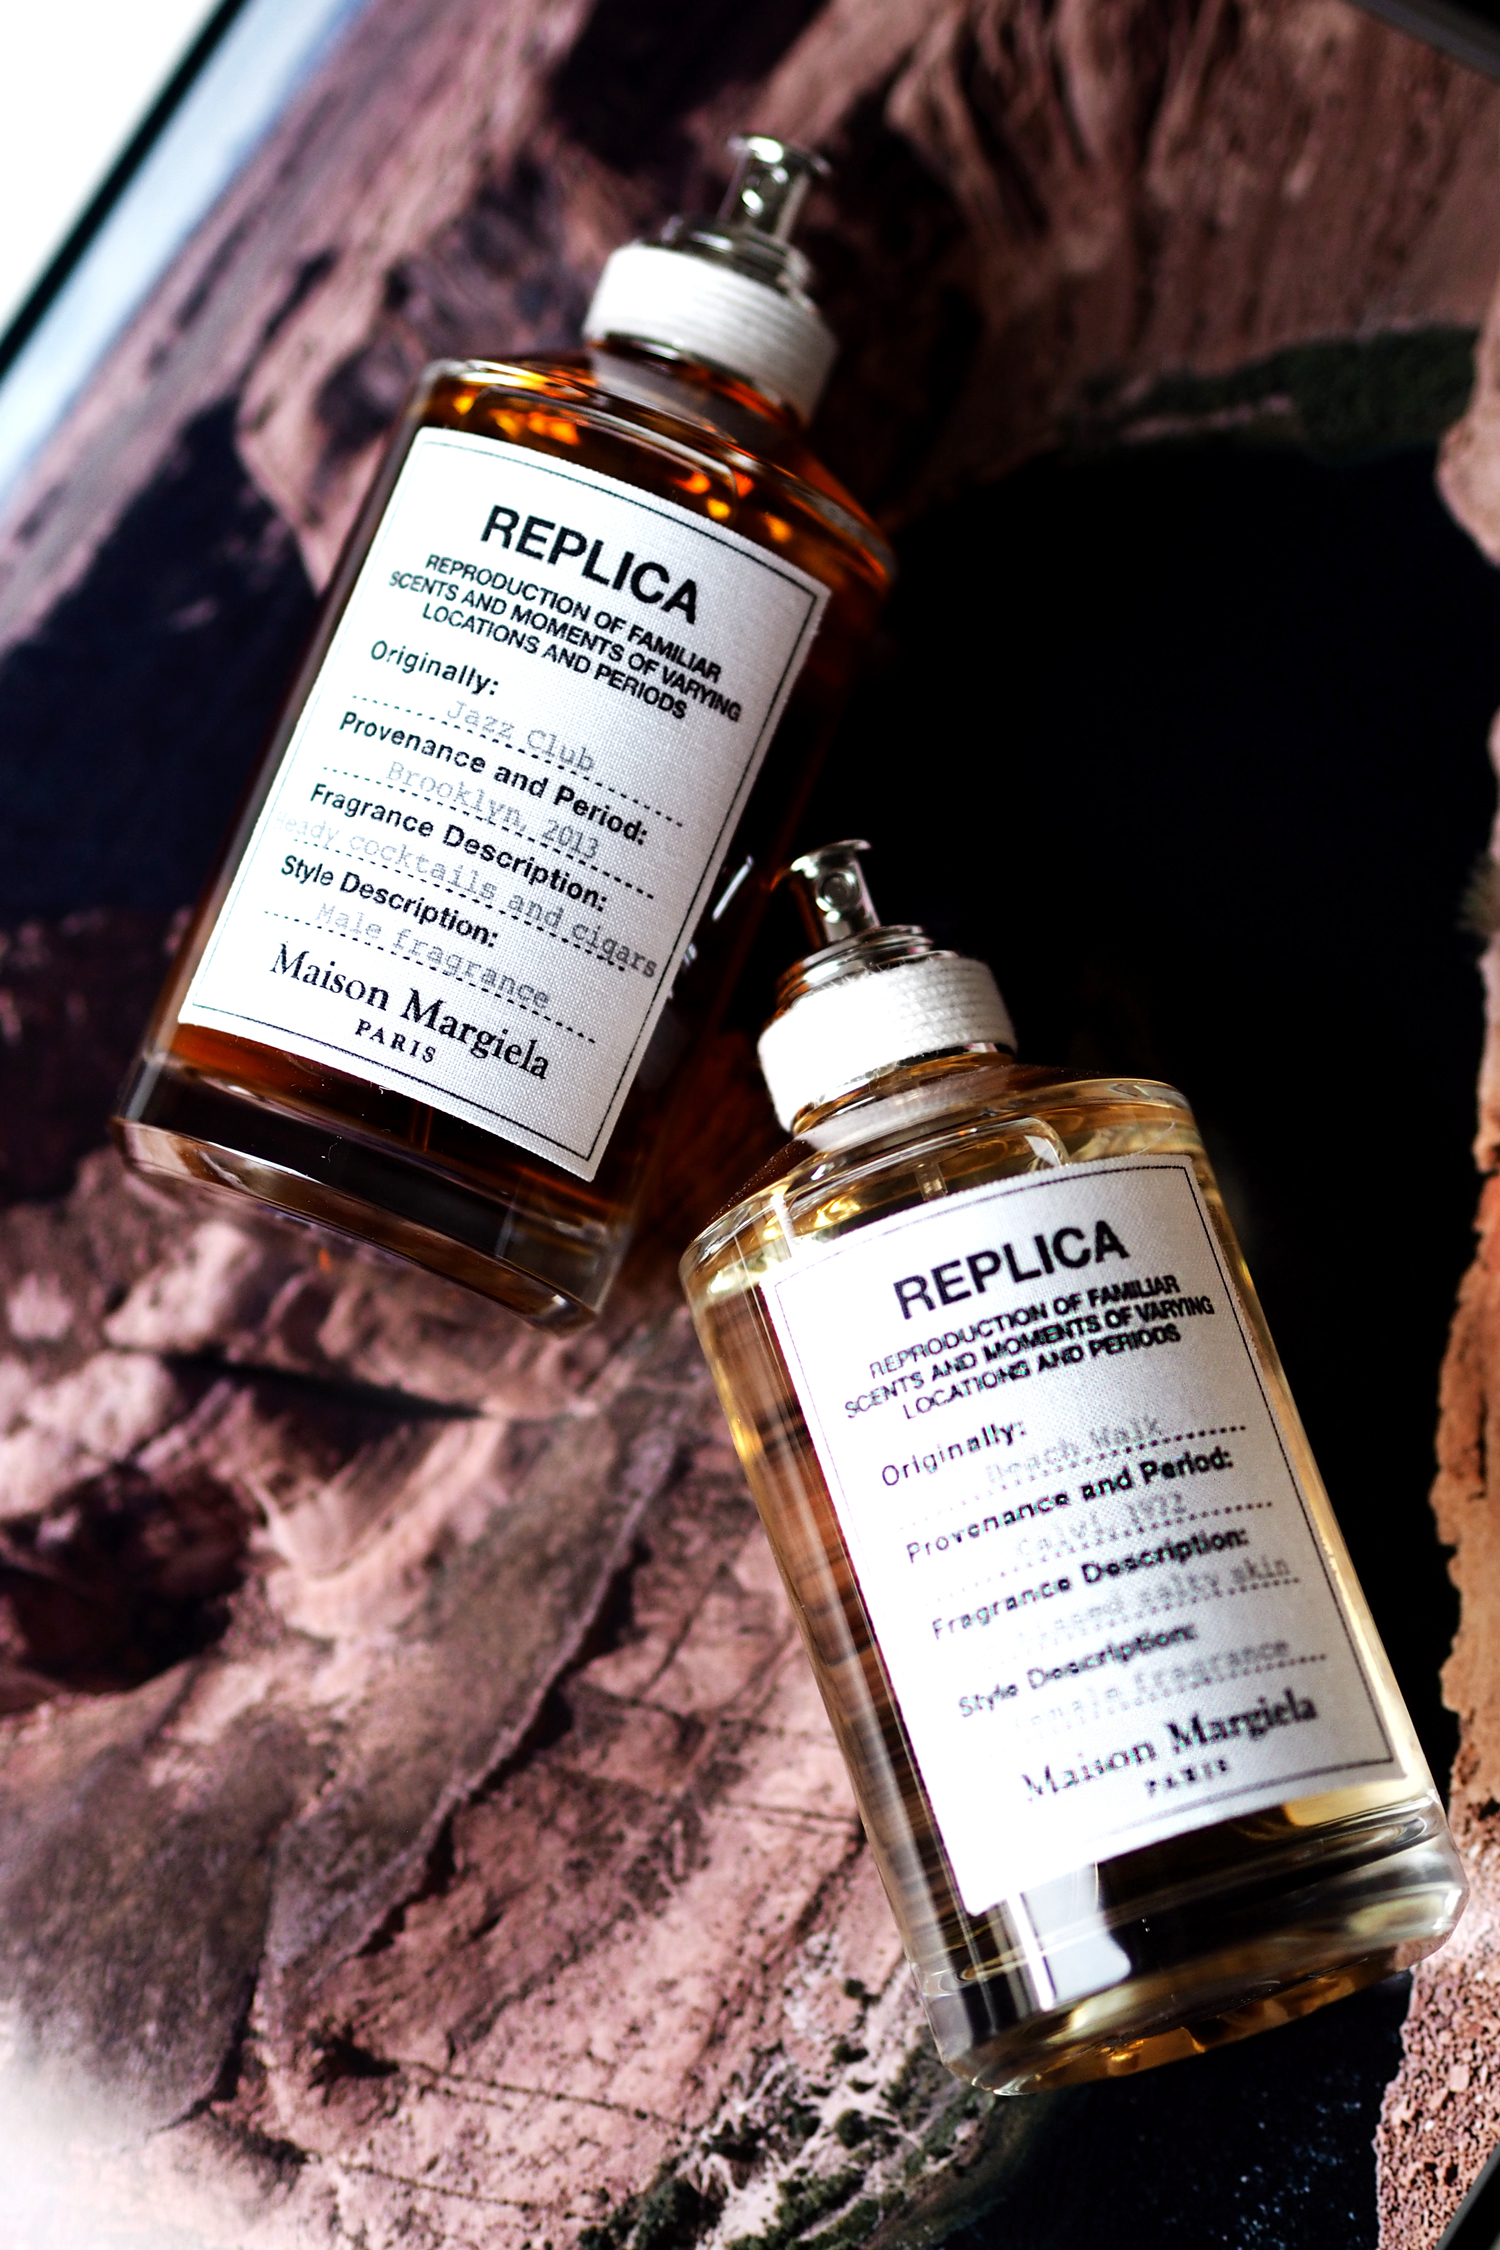 replica-fragrance-review-zoe-newlove-beauty-blogger